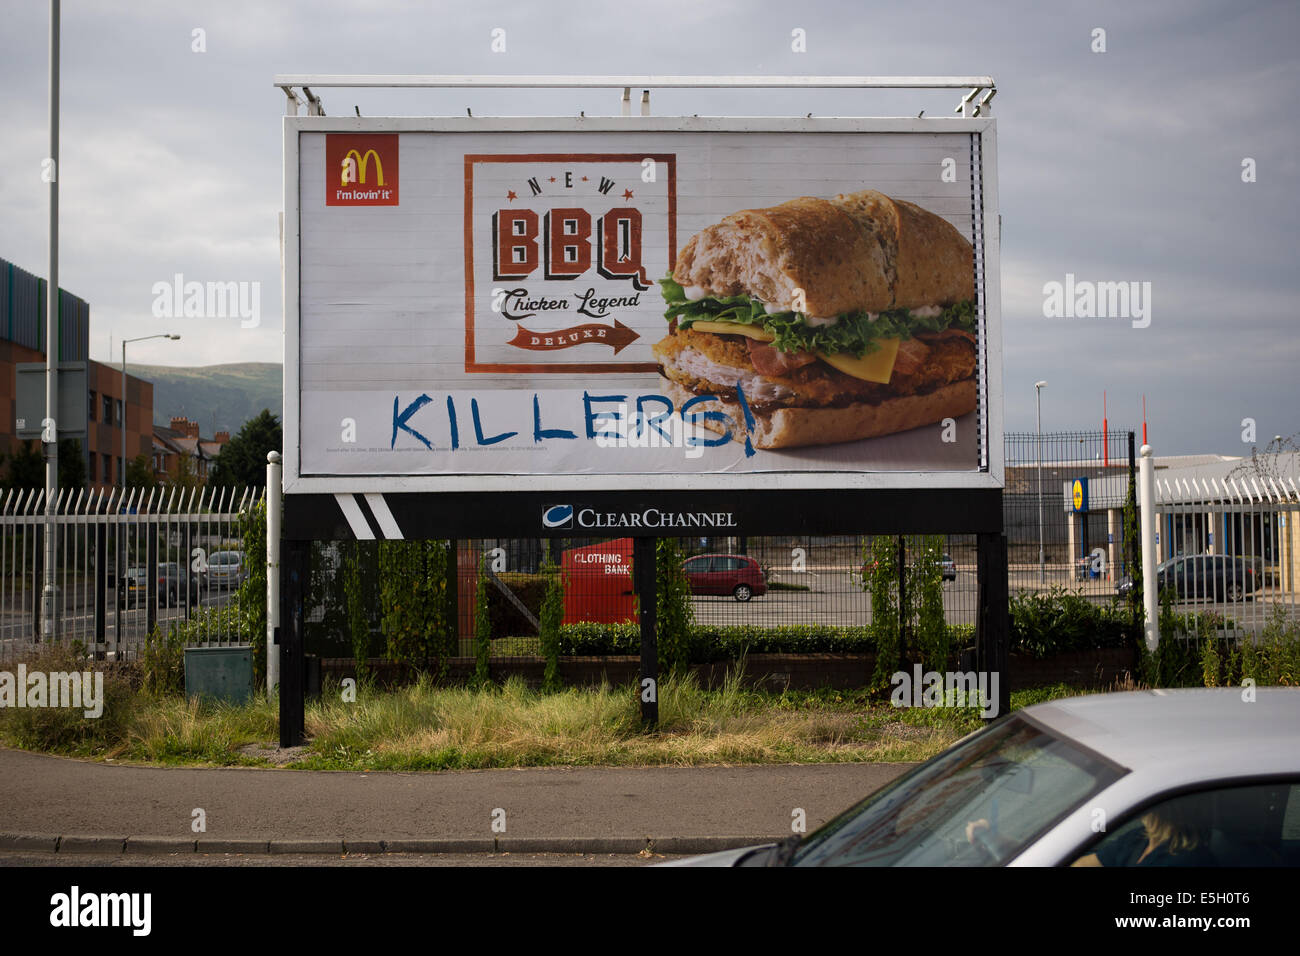 Andersonstown Rd, West Belfast, Ireland. 31st July, 2014. The word 'Killers' has been written on a McDonalds - Stock Image